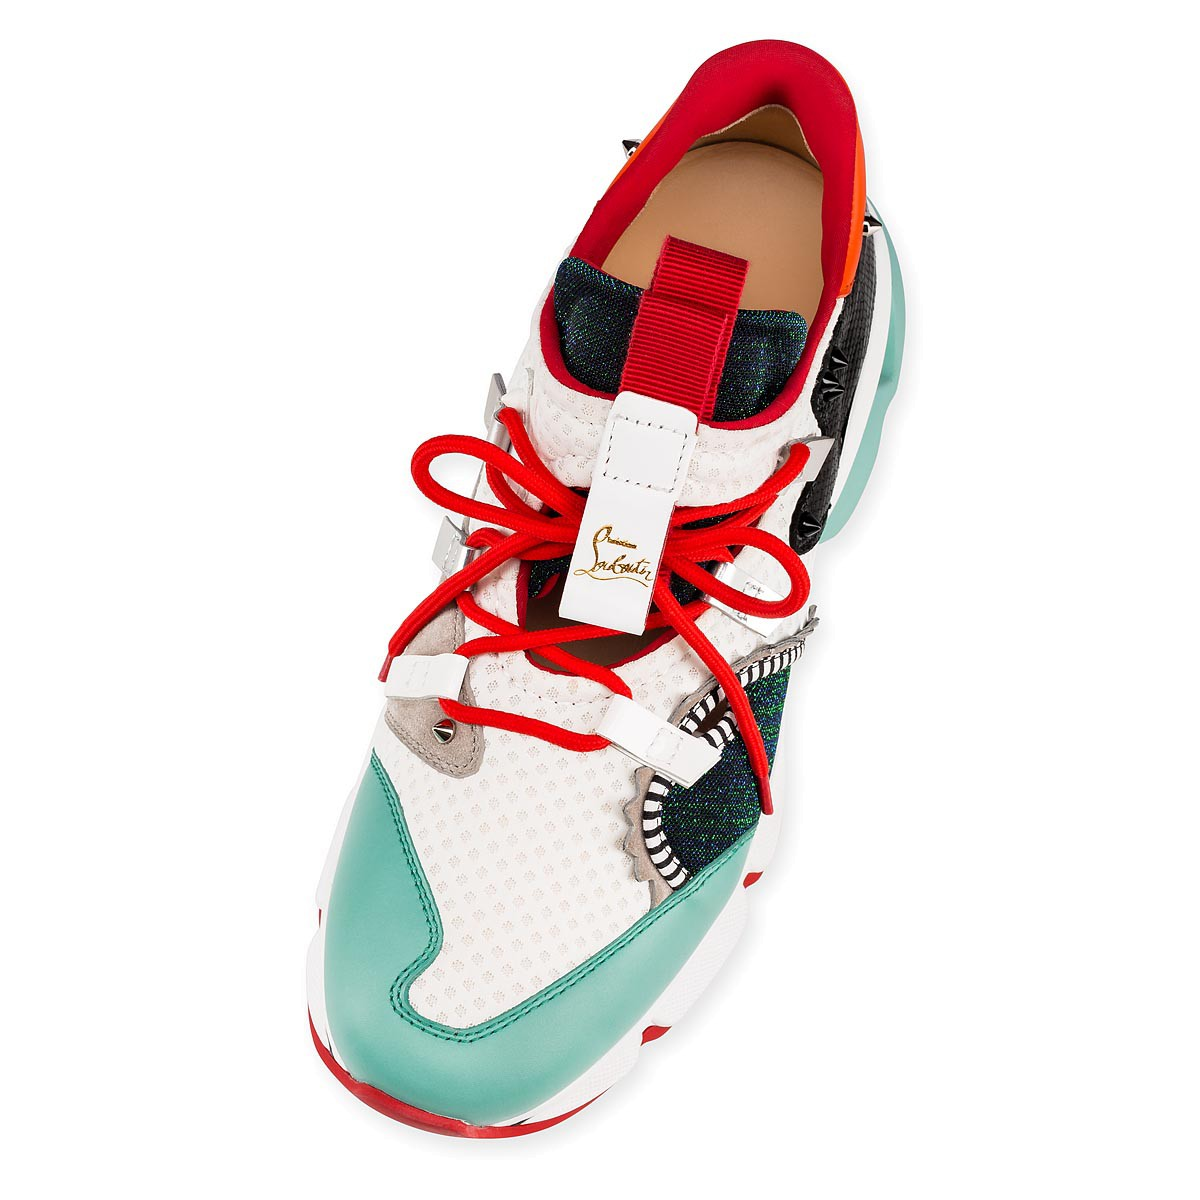 メンズシューズ - Red-runner - Christian Louboutin